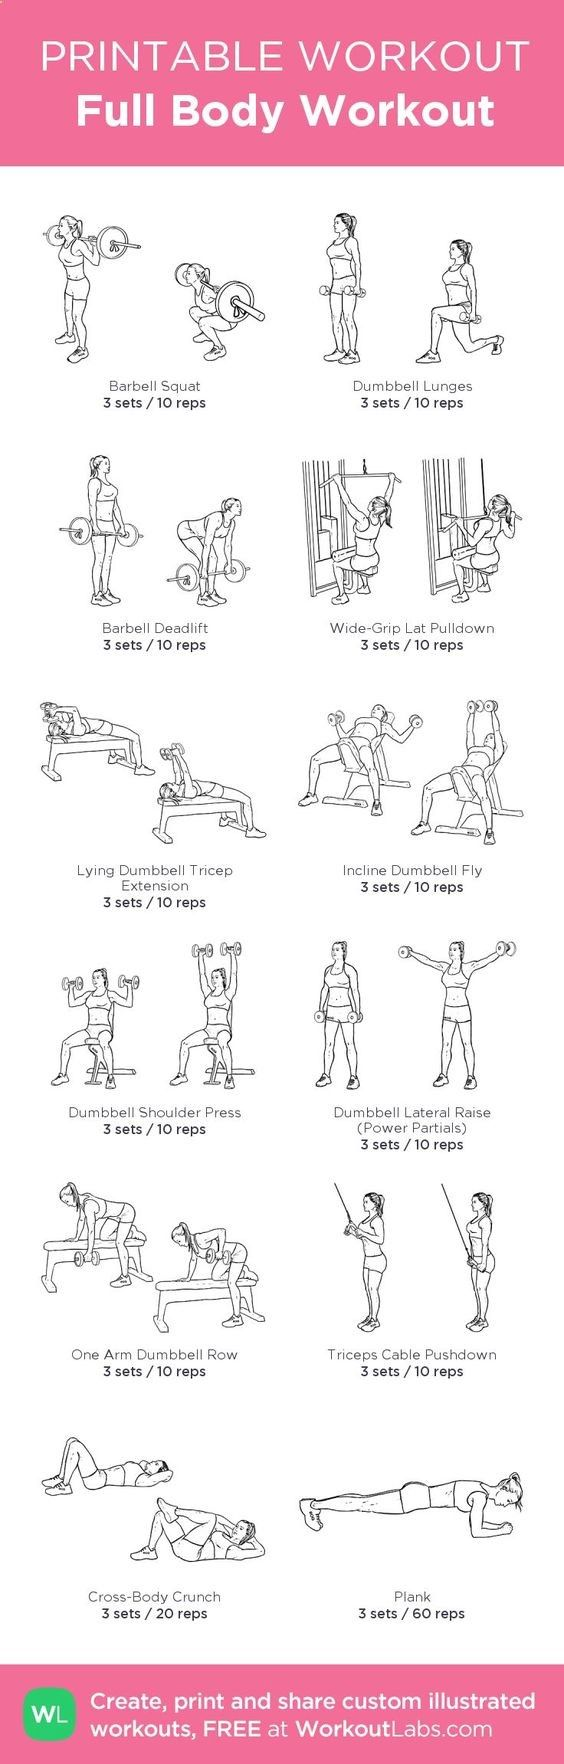 See more here ► Tags: weight loss aids, weight loss for women, workout plans for weight loss - Full Body Workout: my custom printable workout by @WorkoutLabs #workoutlabs #customworkout #exercise #diet #wor